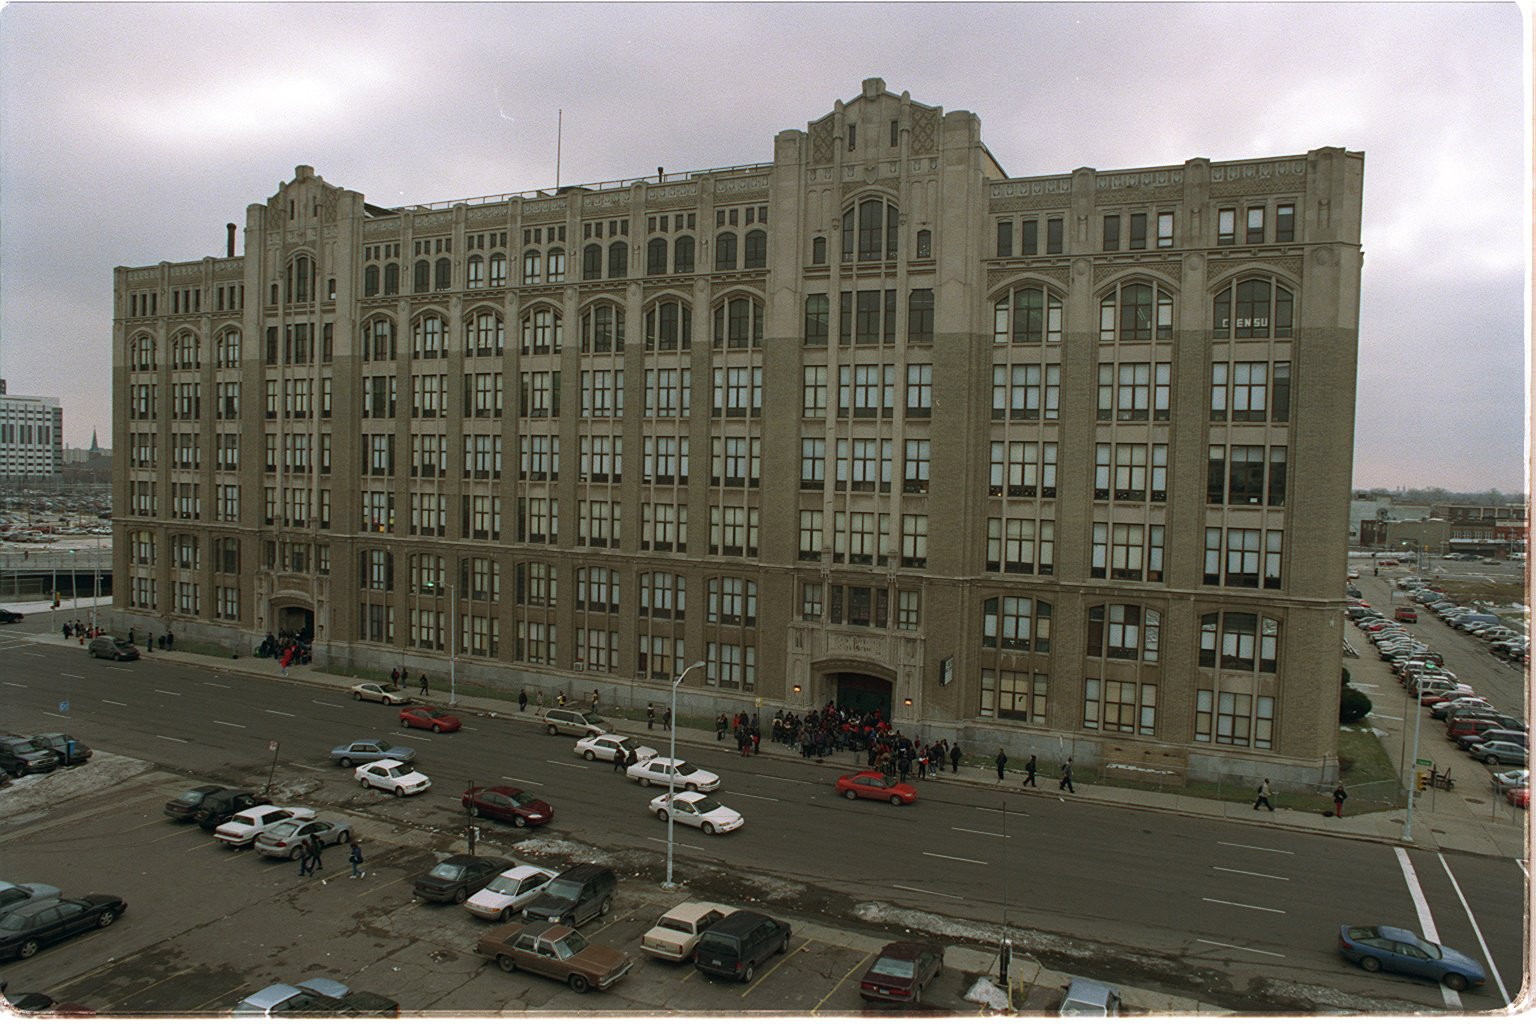 Kwame Kilpatrick and Christine Rowland first met while attending Cass Technical High School together in the 1980s. Cass Tech is a magnet school, and the most prestigious public high school in Detroit.  Courtesy of the Detroit Free Press.